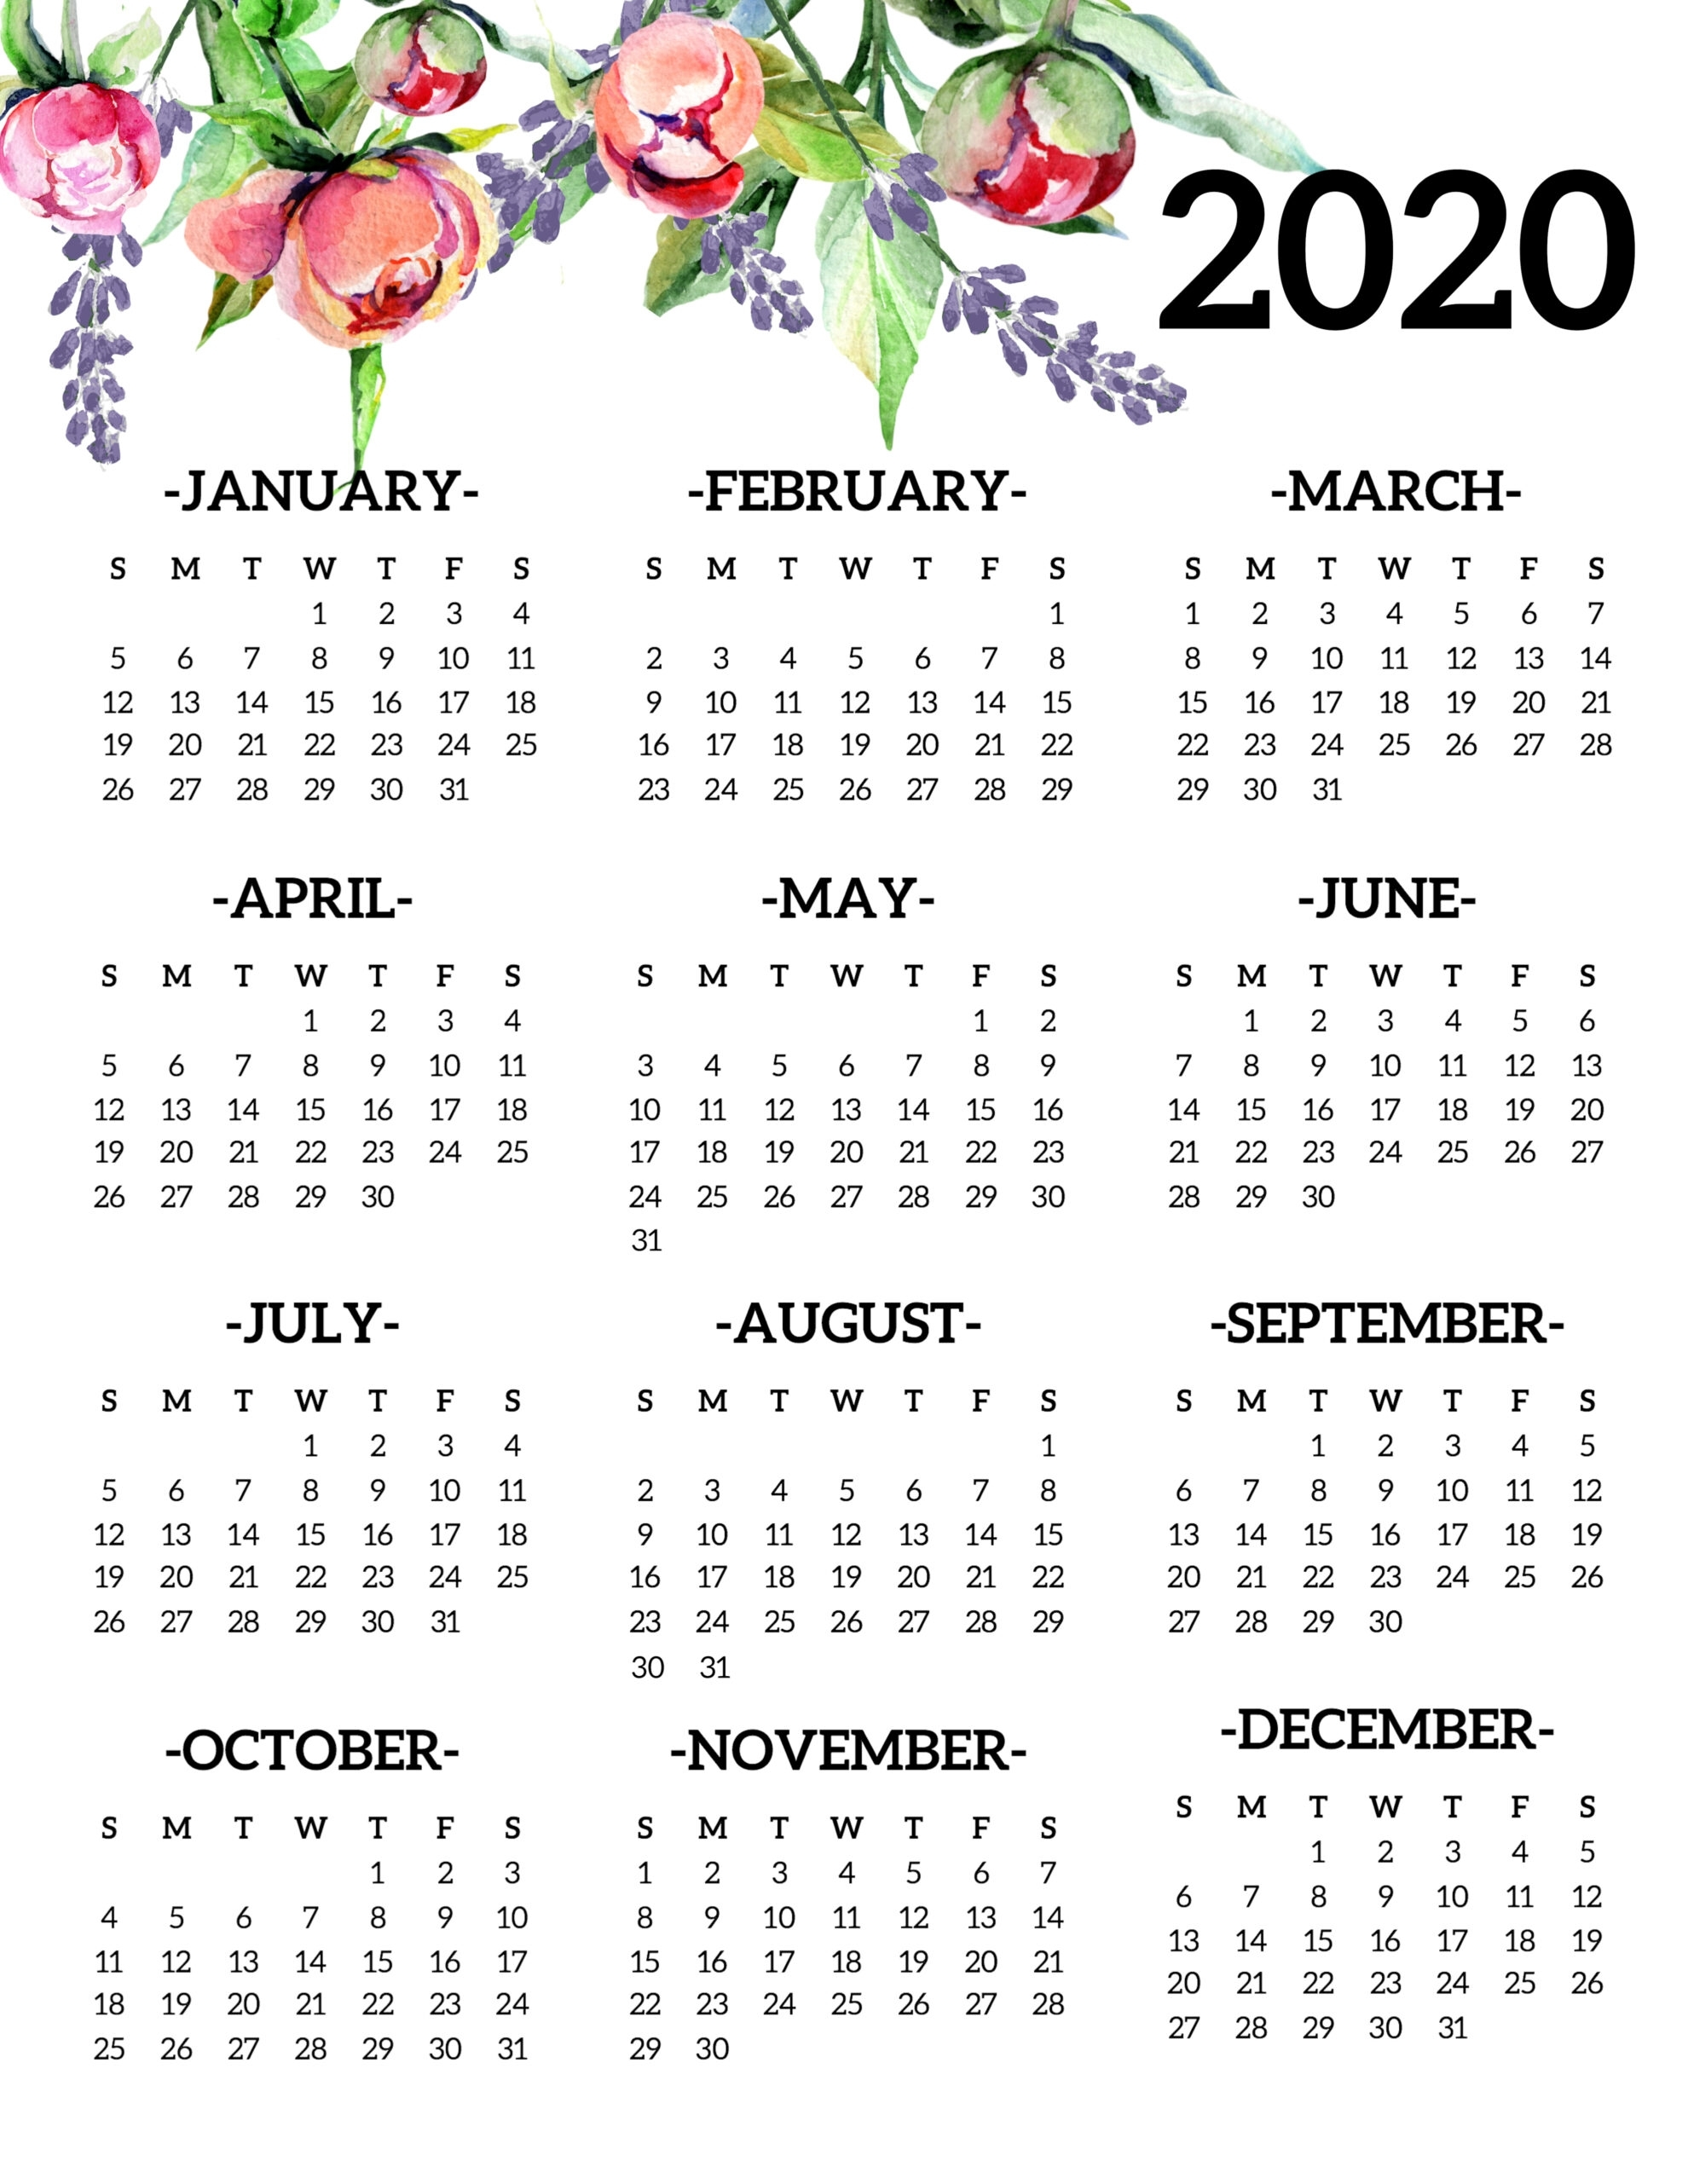 Free Printable 2020 Calendar Yearly One Page Floral - Paper pertaining to Free Printable Year At A Glance Calendar 2020